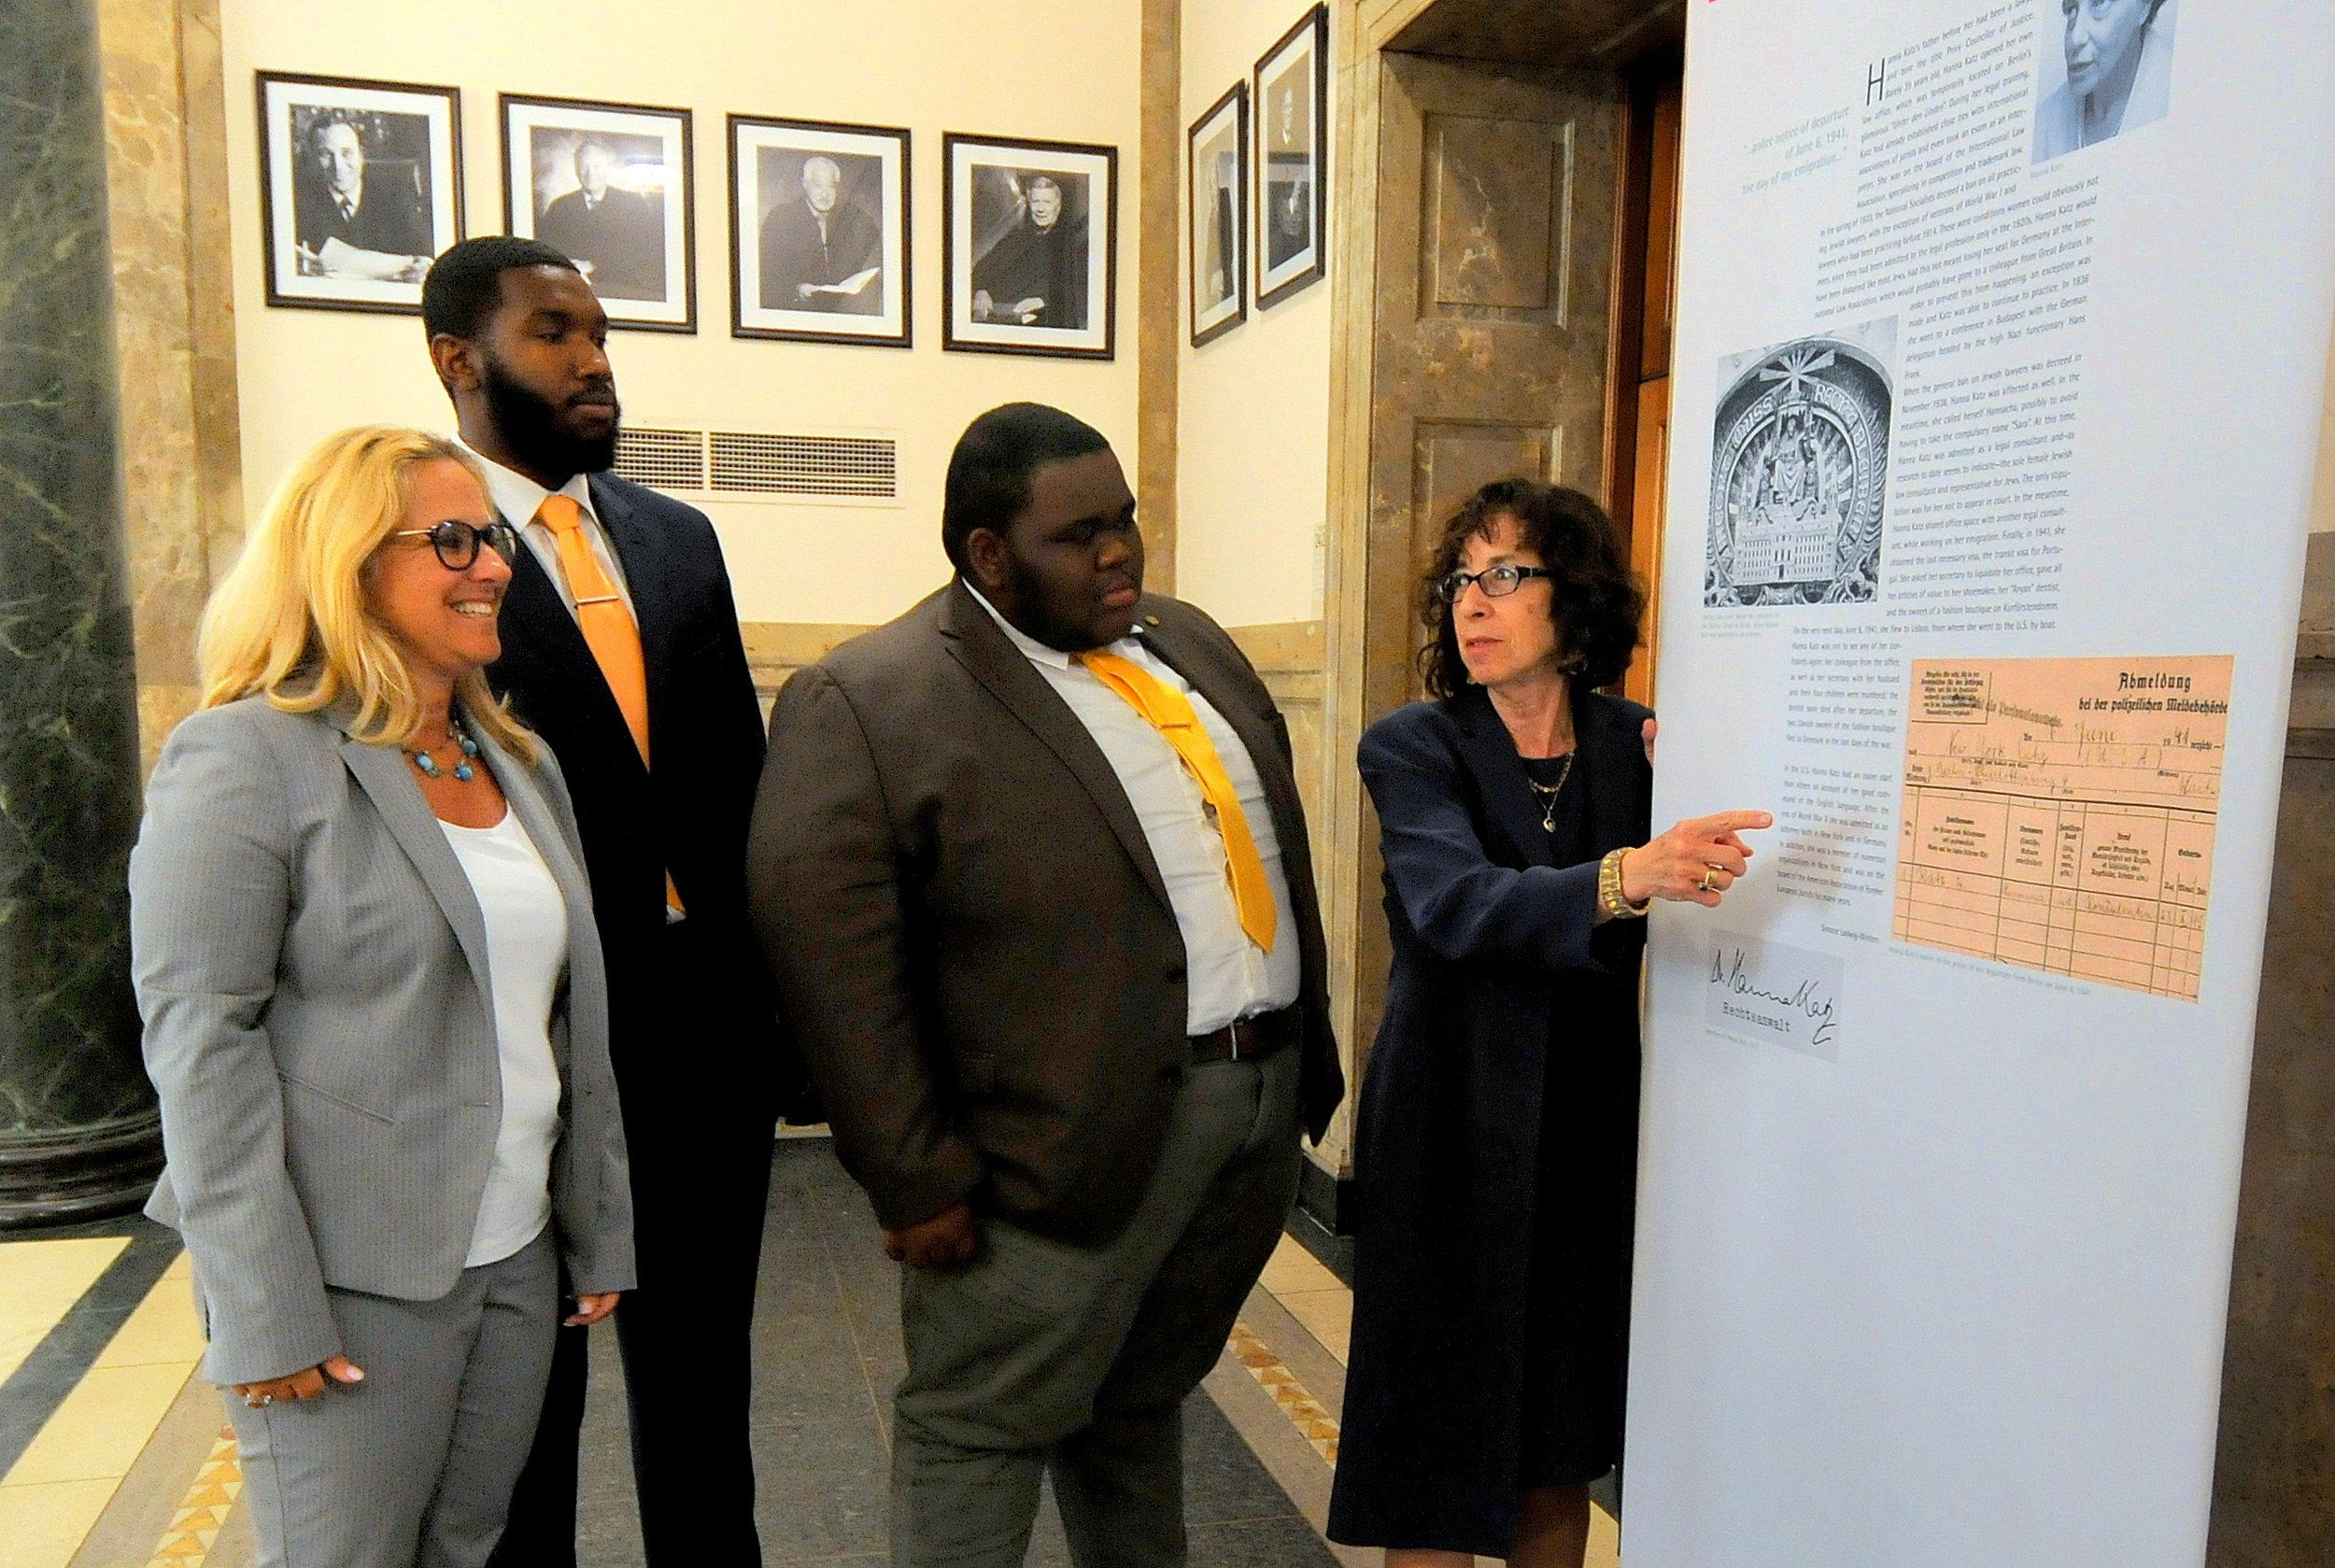 Hon. Bernice Siegal (right) considers an exhibit display with Hon. Jodi Orlow (left) and intern Jacoby Gimore (second from left) and Jordan Deloch at Queens Supreme Court.